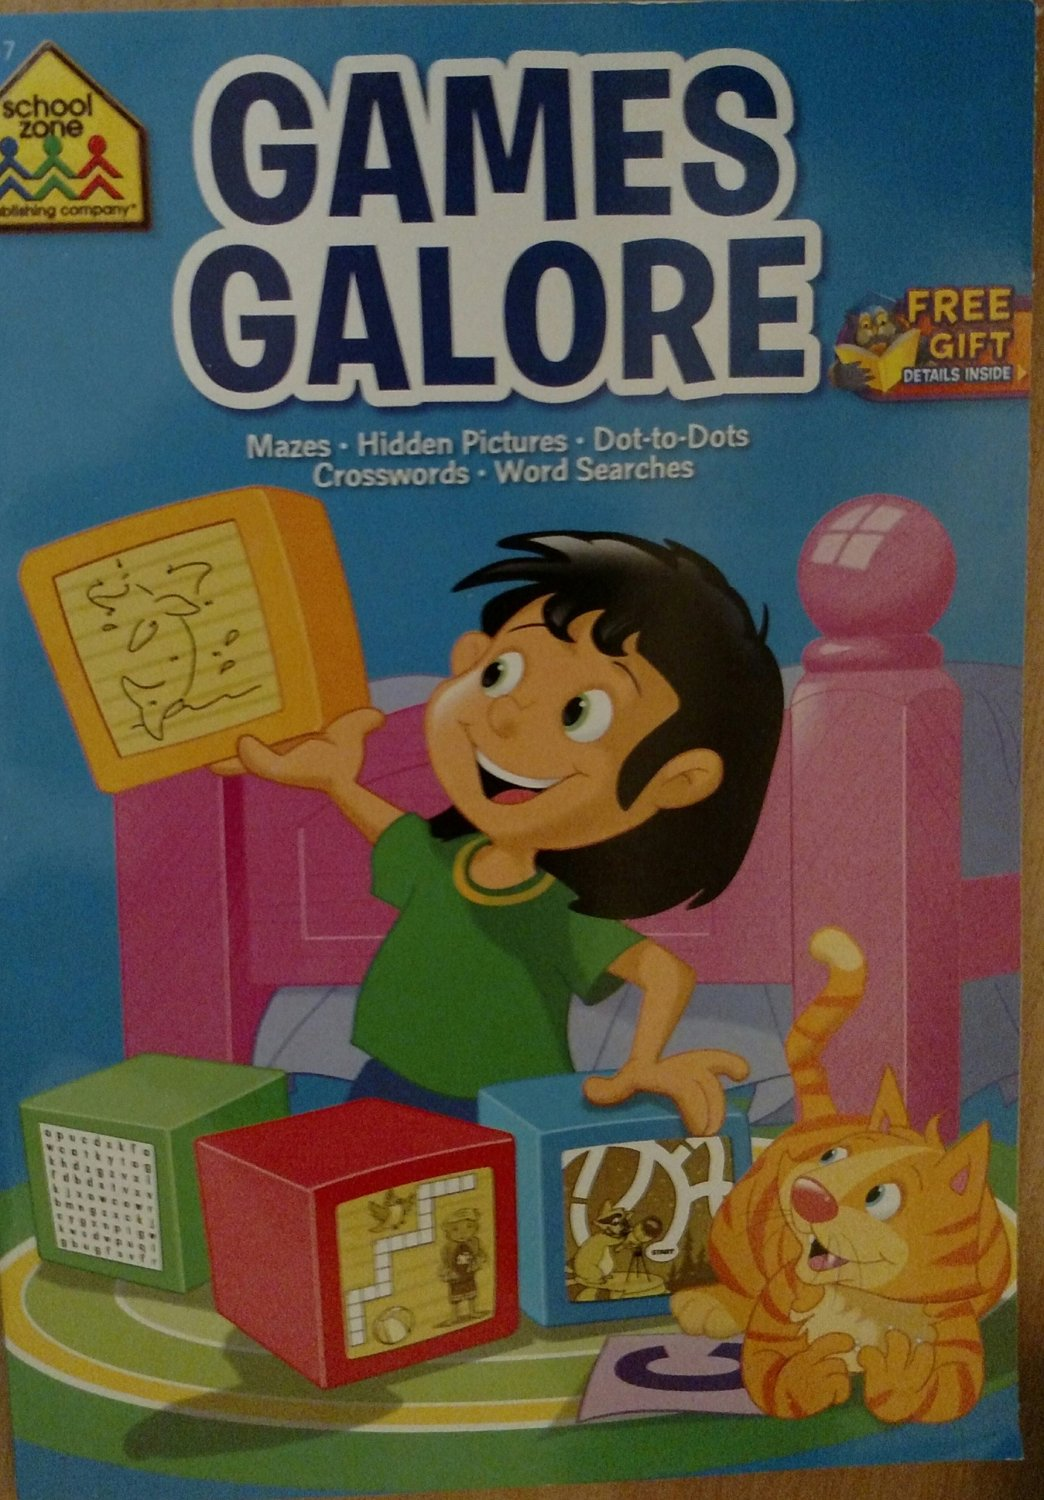 School Zone Games Galore Mazes, Hidden Pictures, Dots-to-Dots, Crosswords, Word Searches